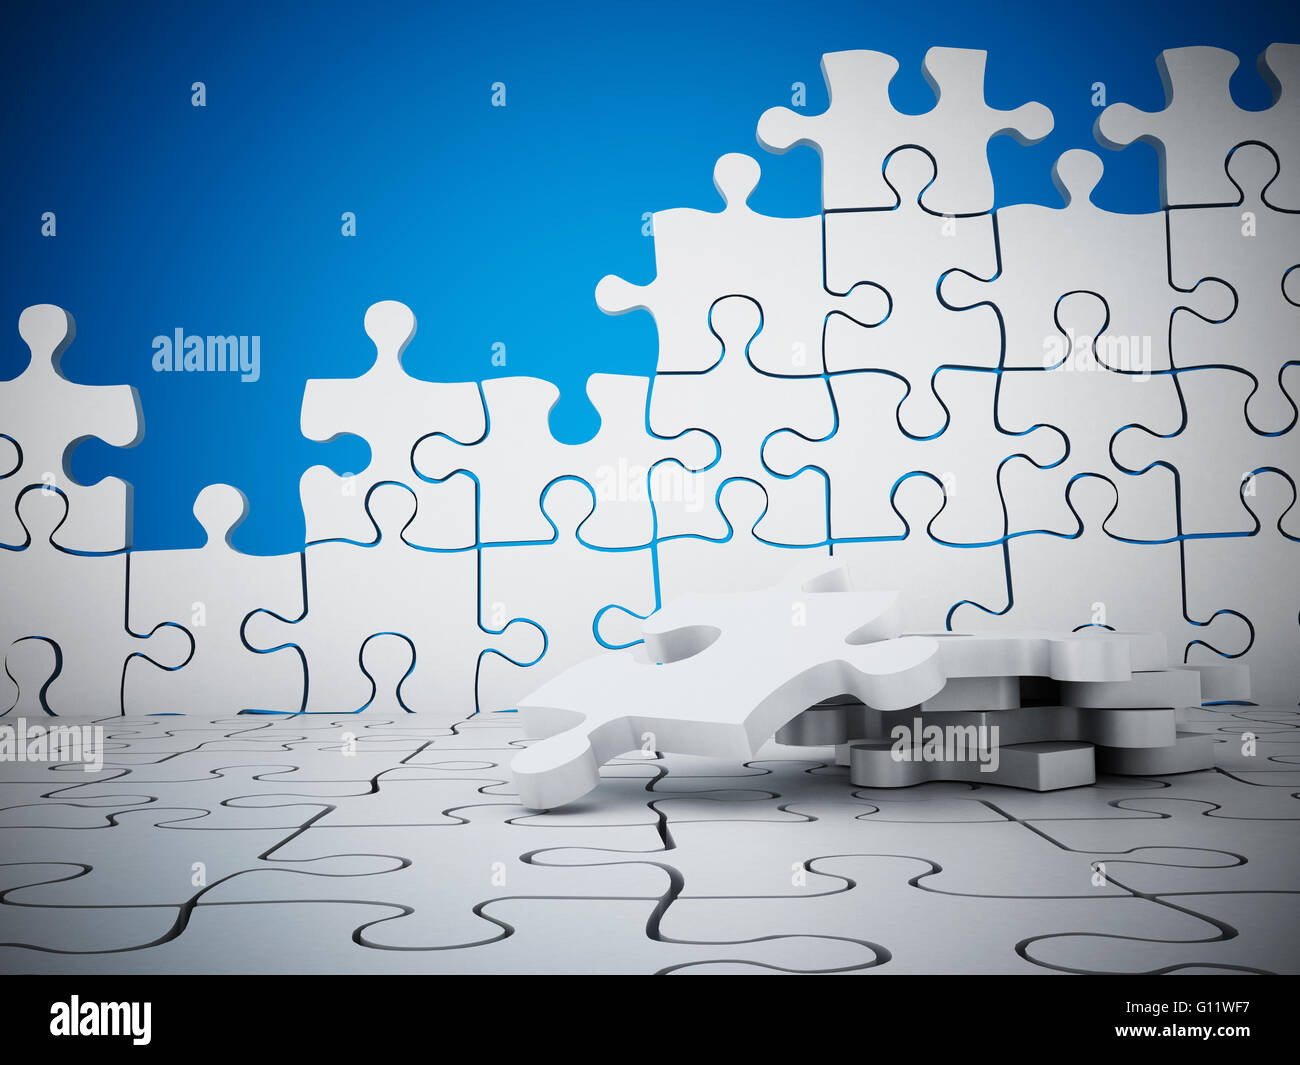 Puzzle wall with missing pieces on blue background - Stock Image